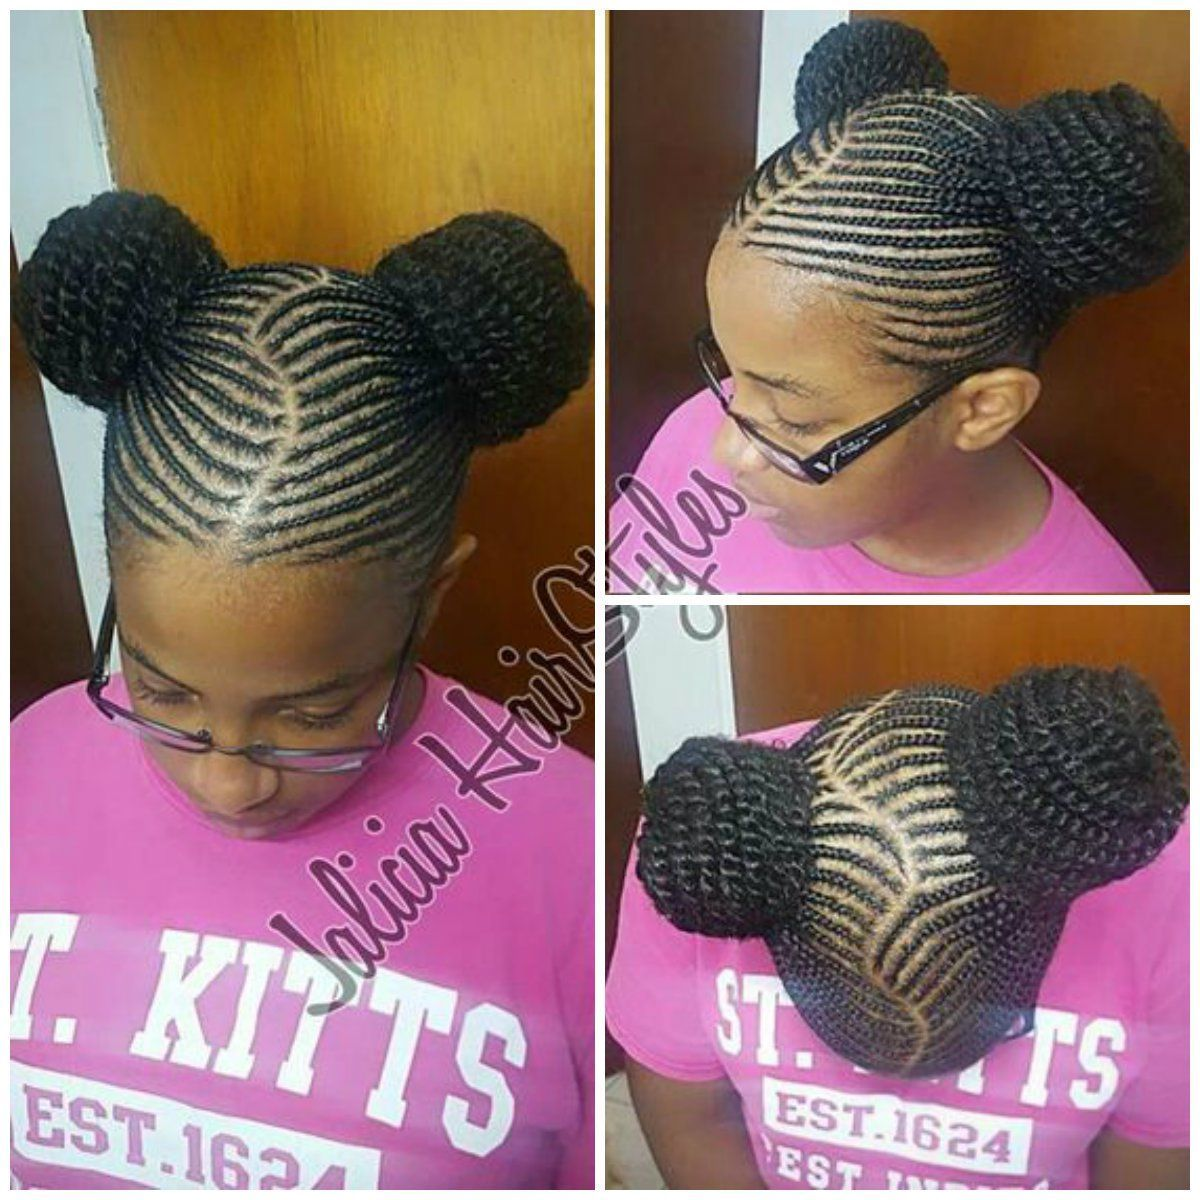 29 Braided Cornrows With Buns For Little Black Girls Afrocosmopolitan Kids Cornrow Hairstyles Cornrow Hairstyles Little Girl Hairstyles